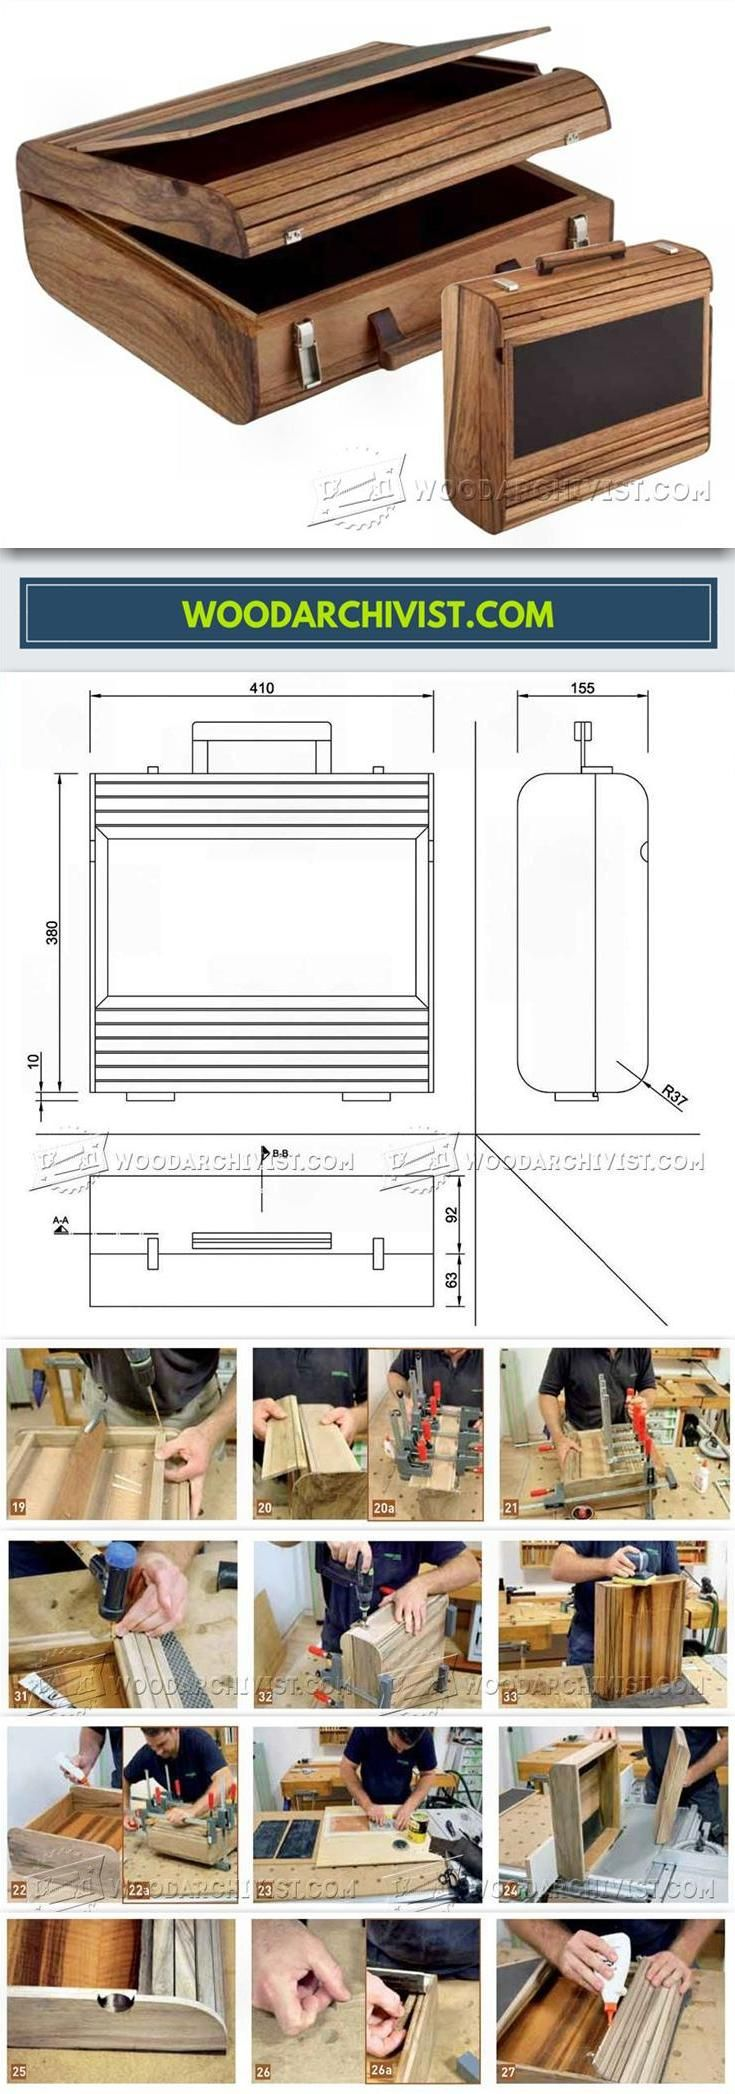 DIY Wooden Attache Case - Woodworking Plans and Projects | WoodArchivist.com